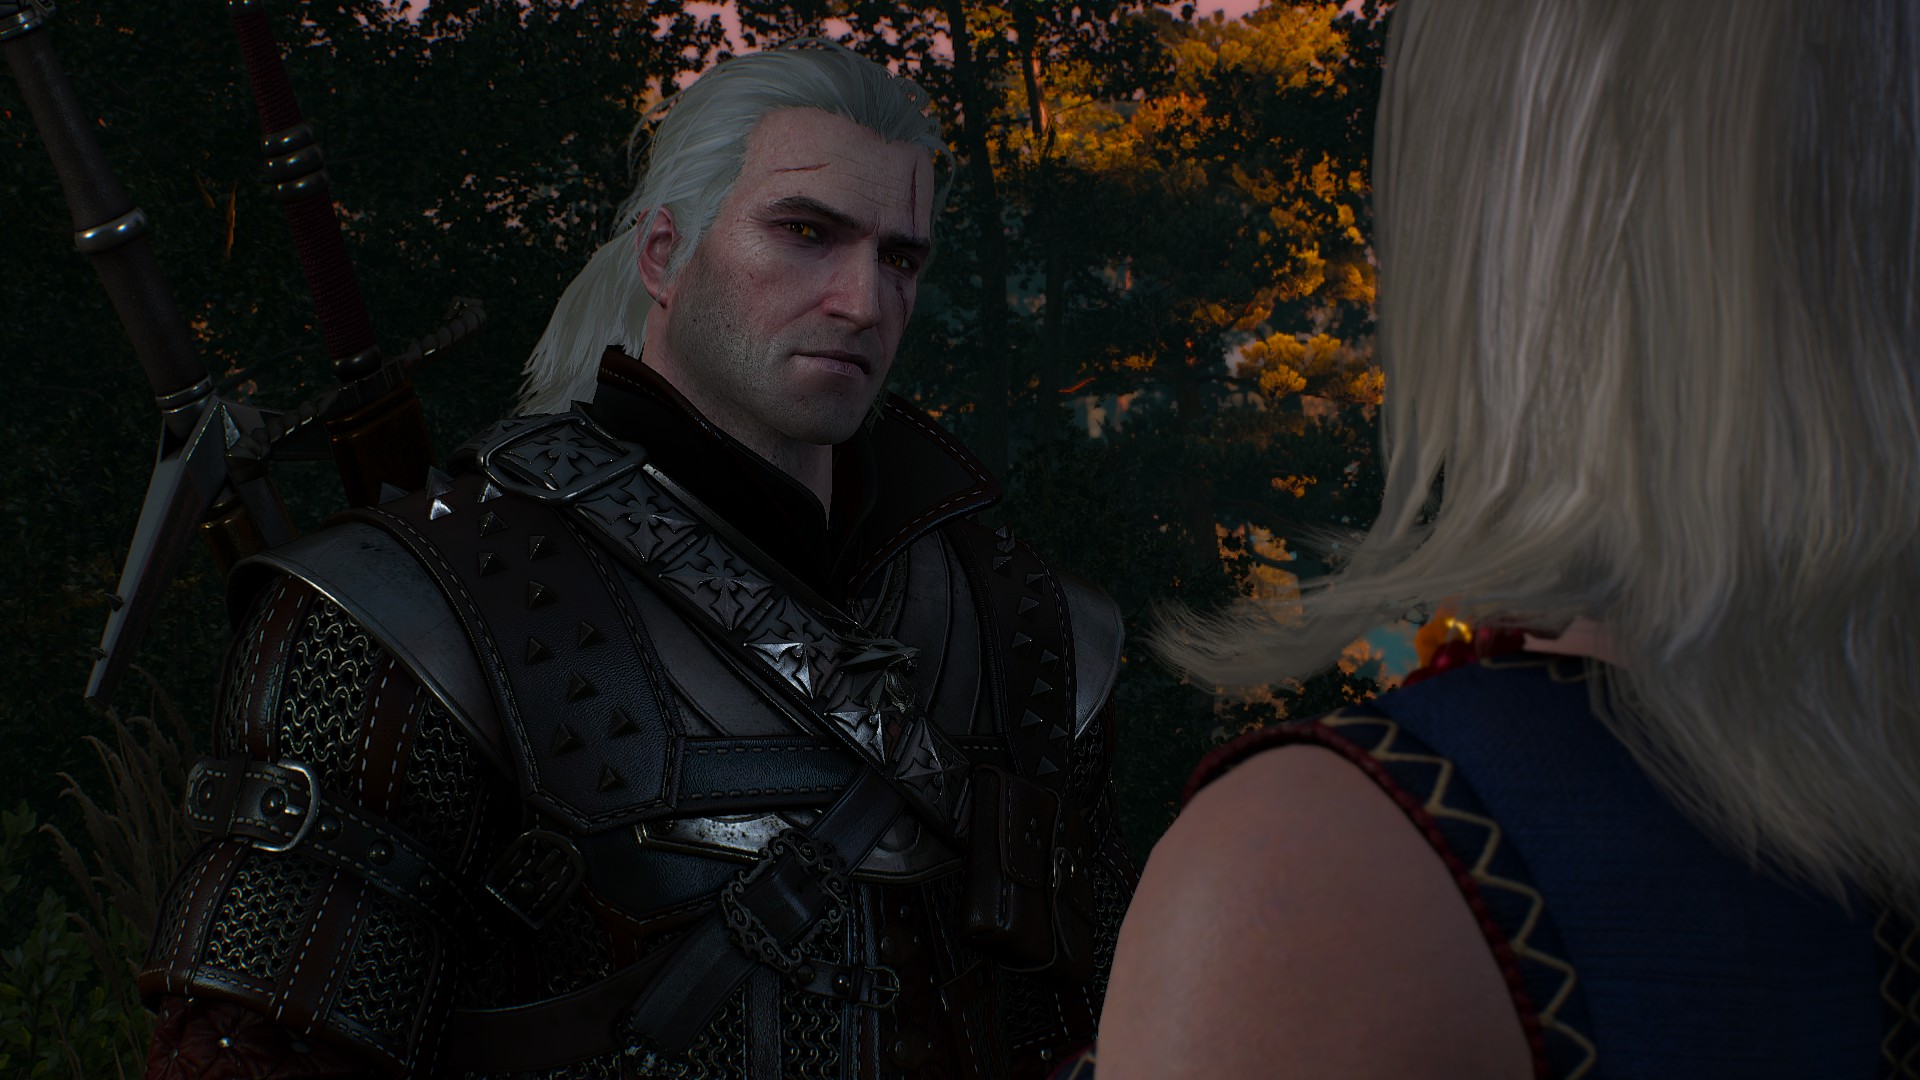 20180929095314_1.jpg - Witcher 3: Wild Hunt, the